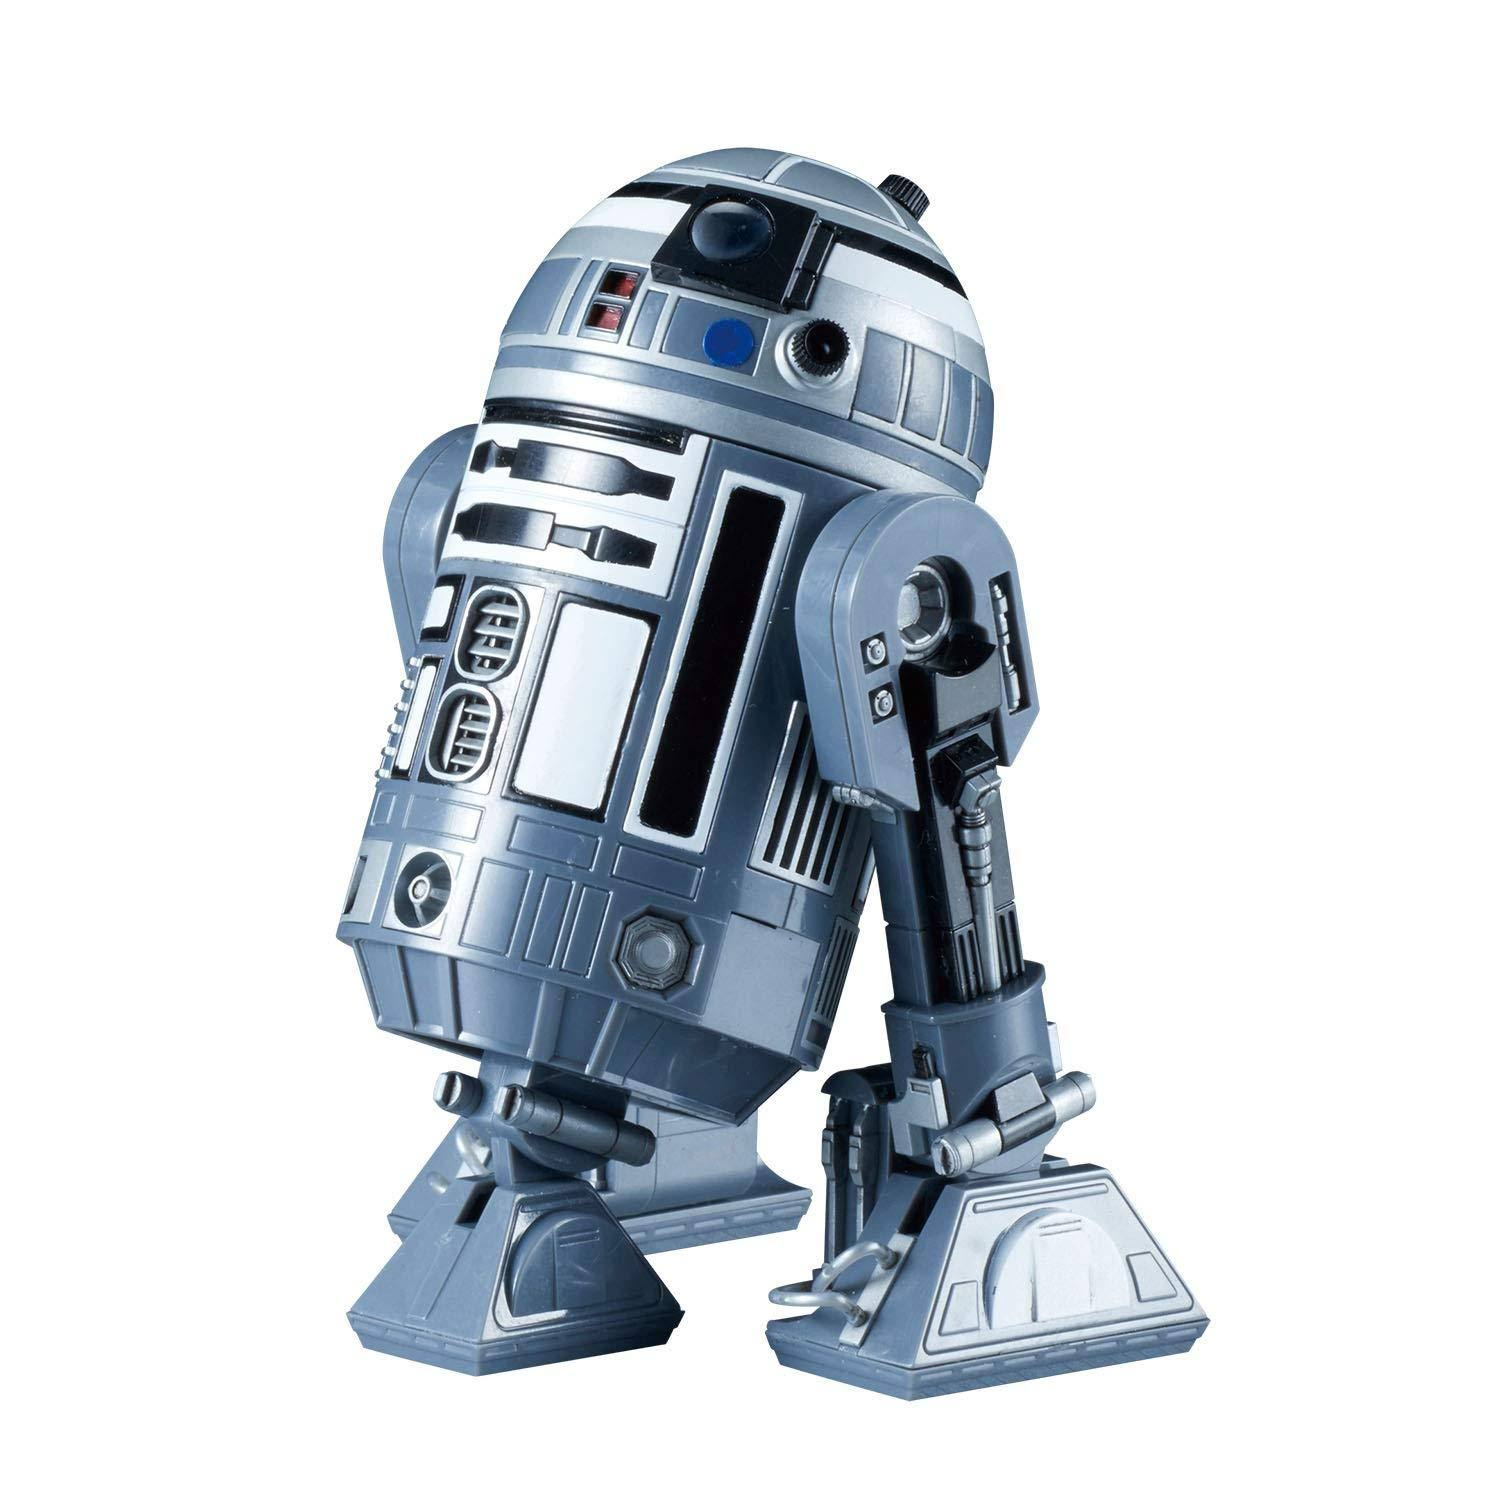 Star Wars R2-q2 1/12 Plastic Model Bas5057710 4573102577108 Bandai